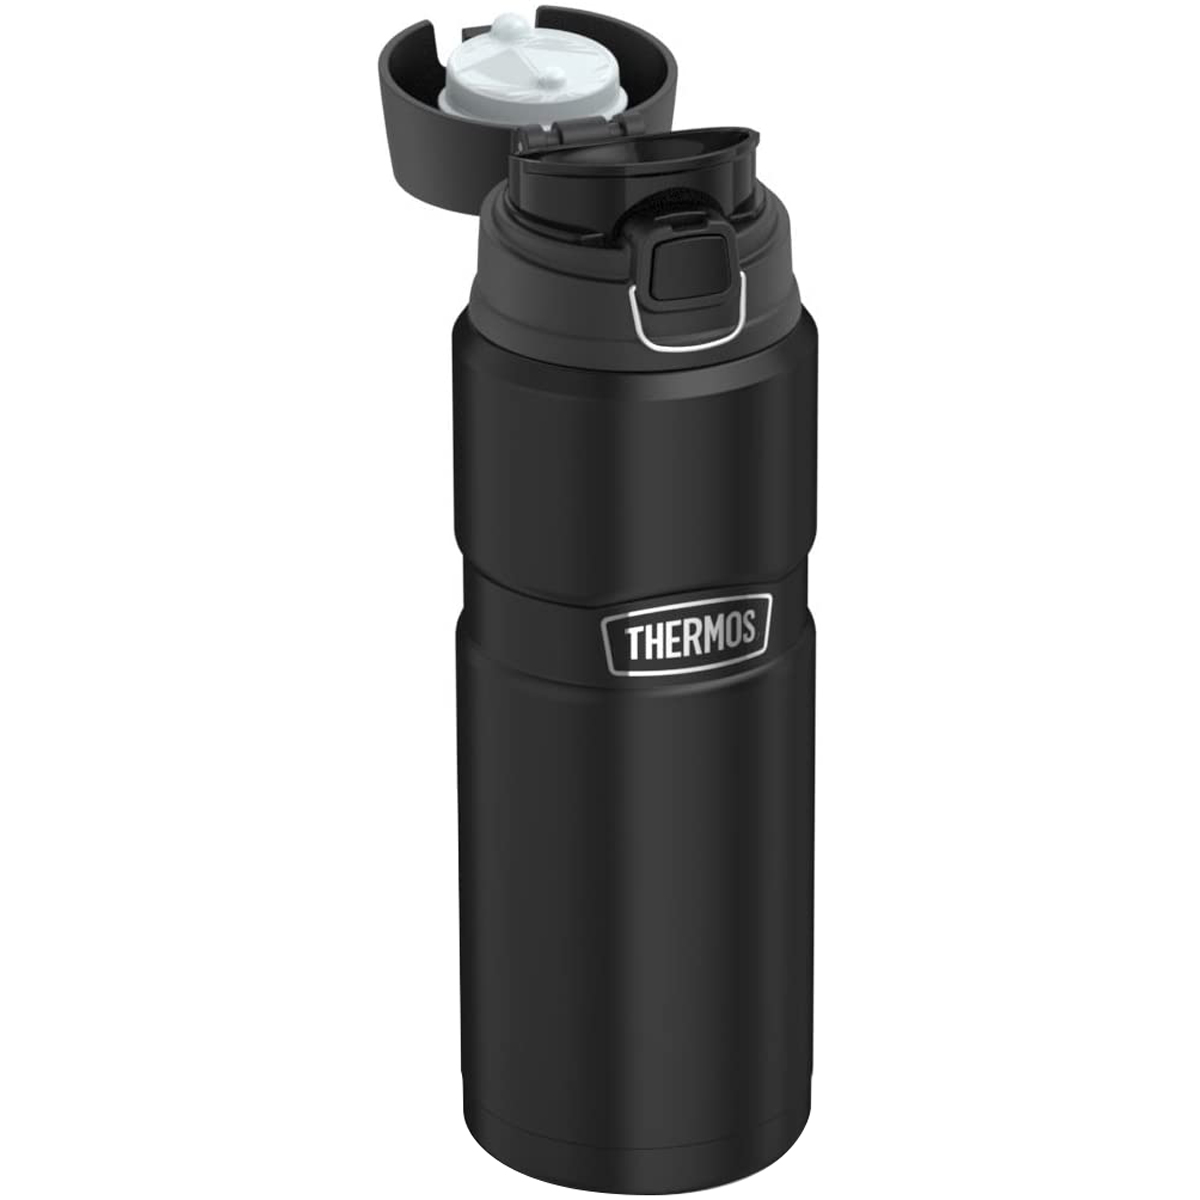 thumbnail 5 - Thermos 24 oz. Stainless King Vacuum Insulated Stainless Steel Drink Bottle